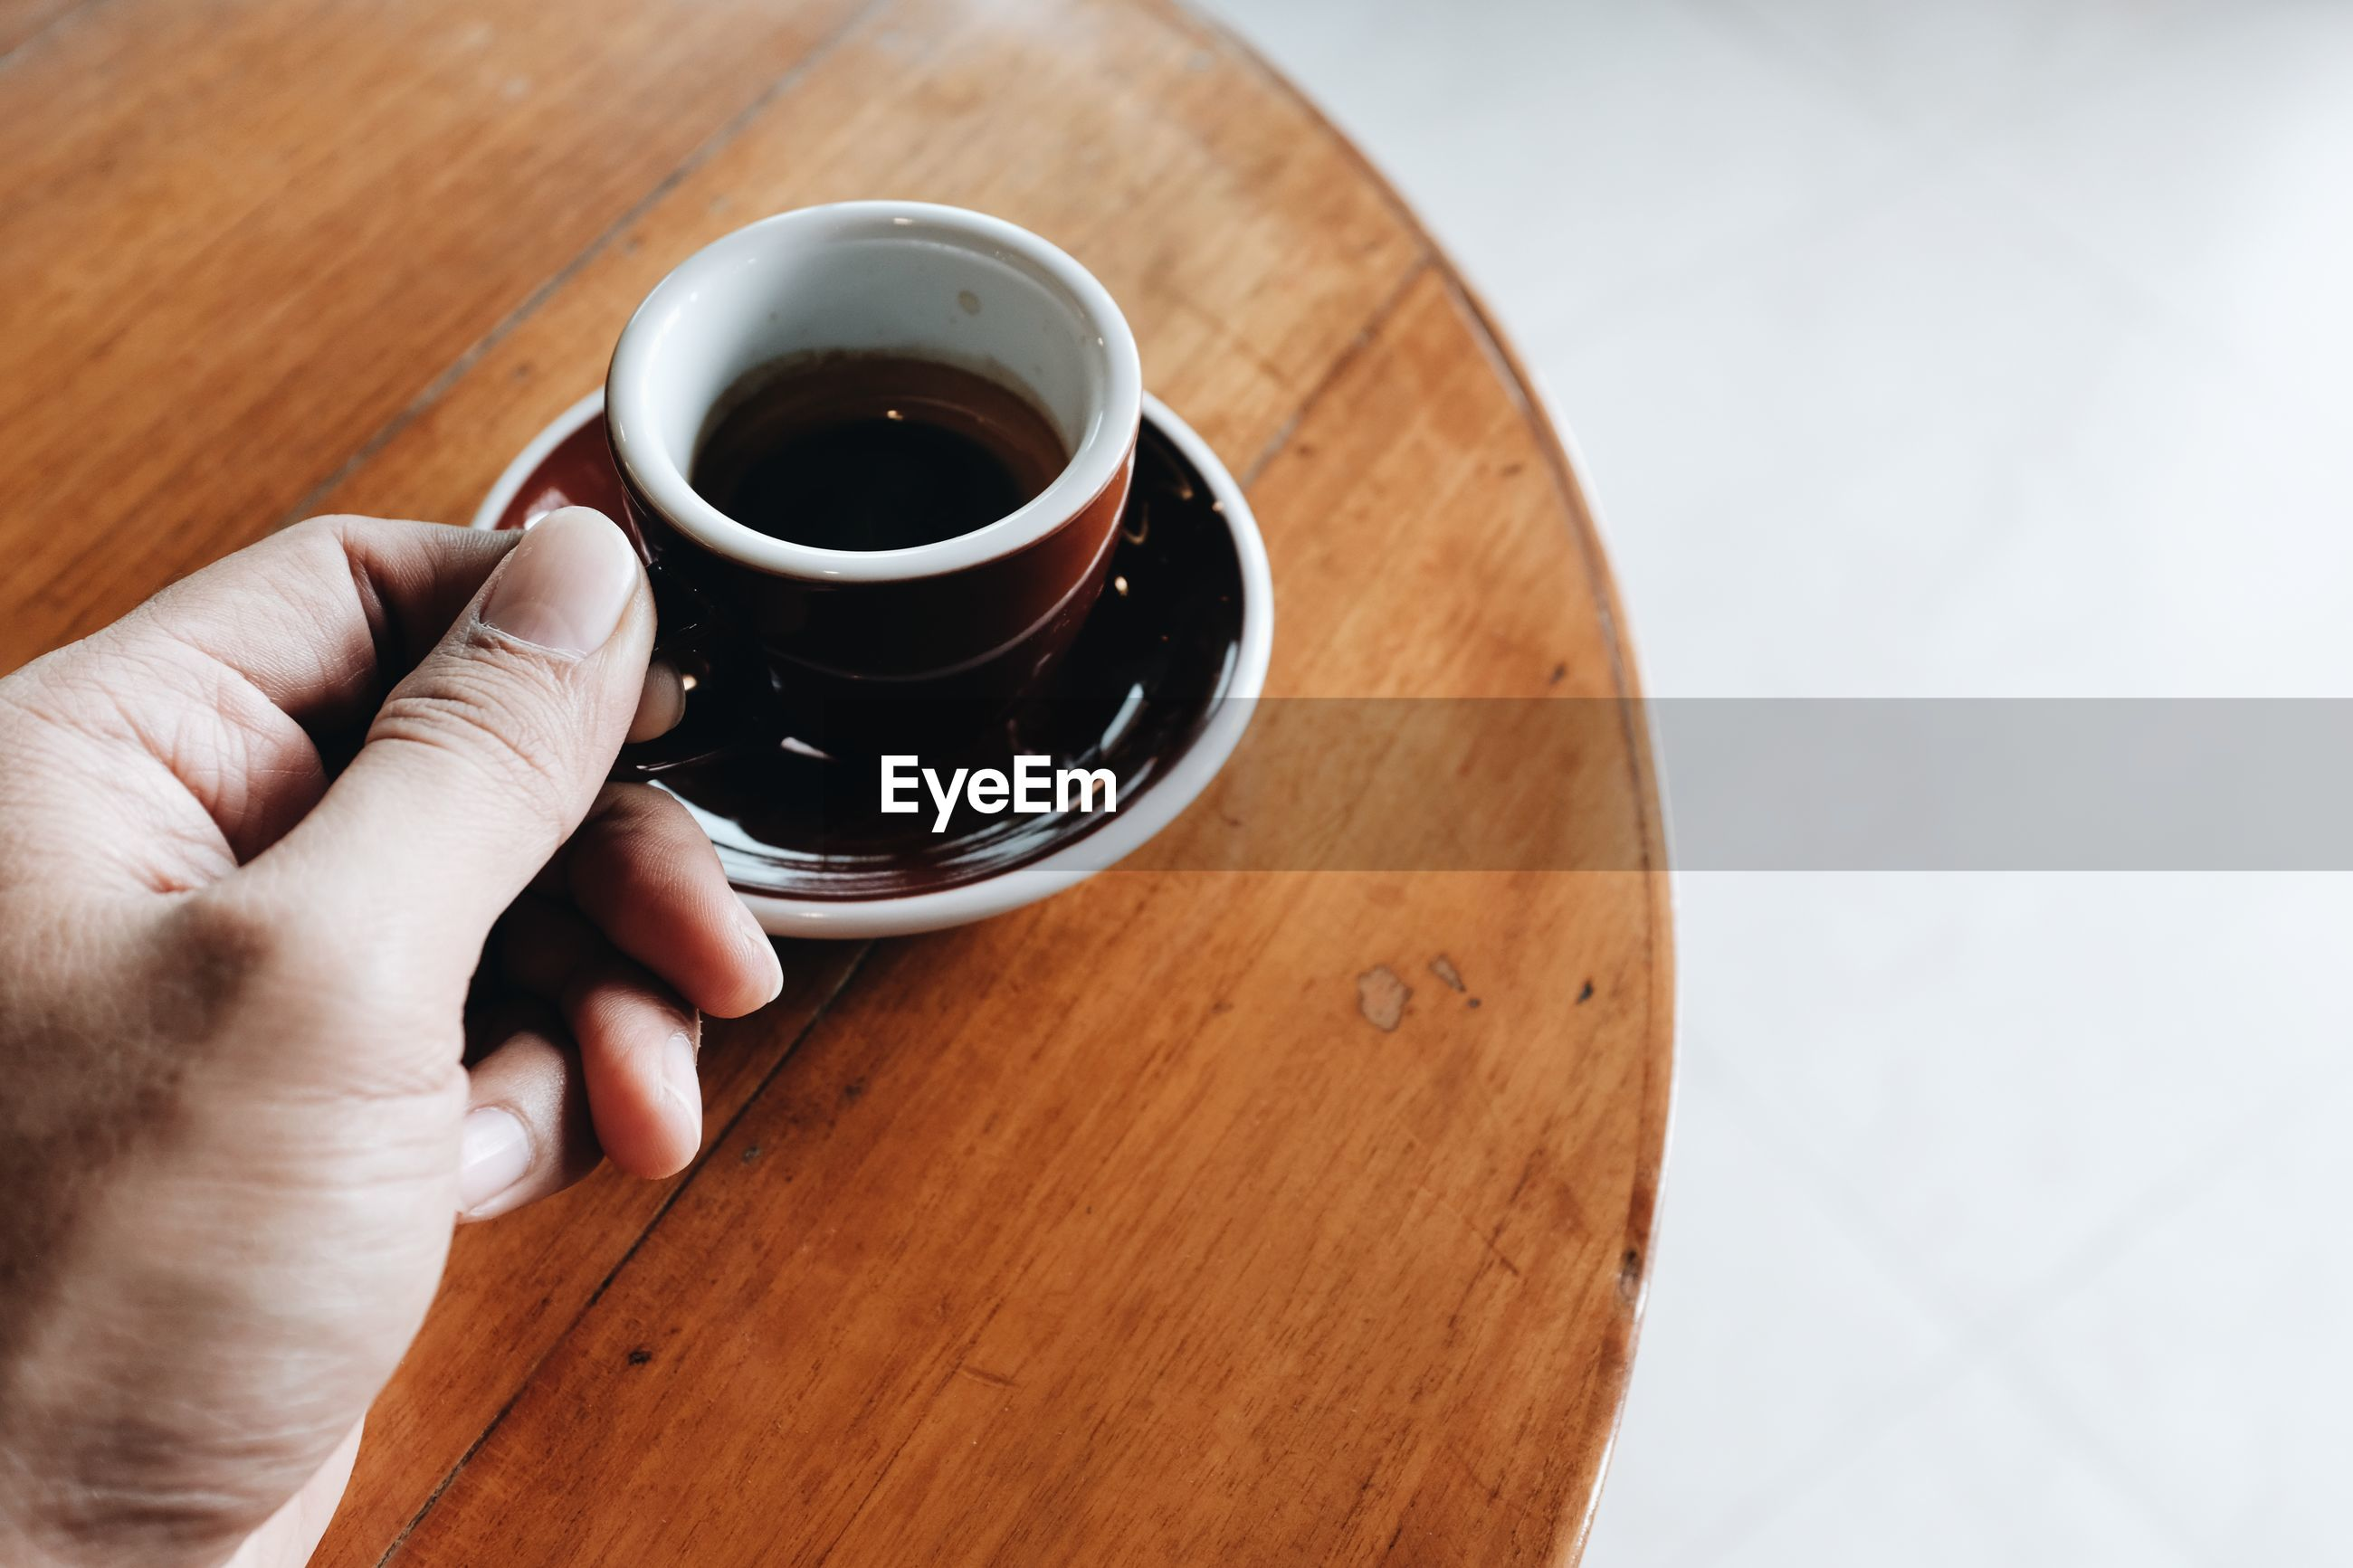 HIGH ANGLE VIEW OF HAND HOLDING COFFEE CUP ON WOODEN TABLE